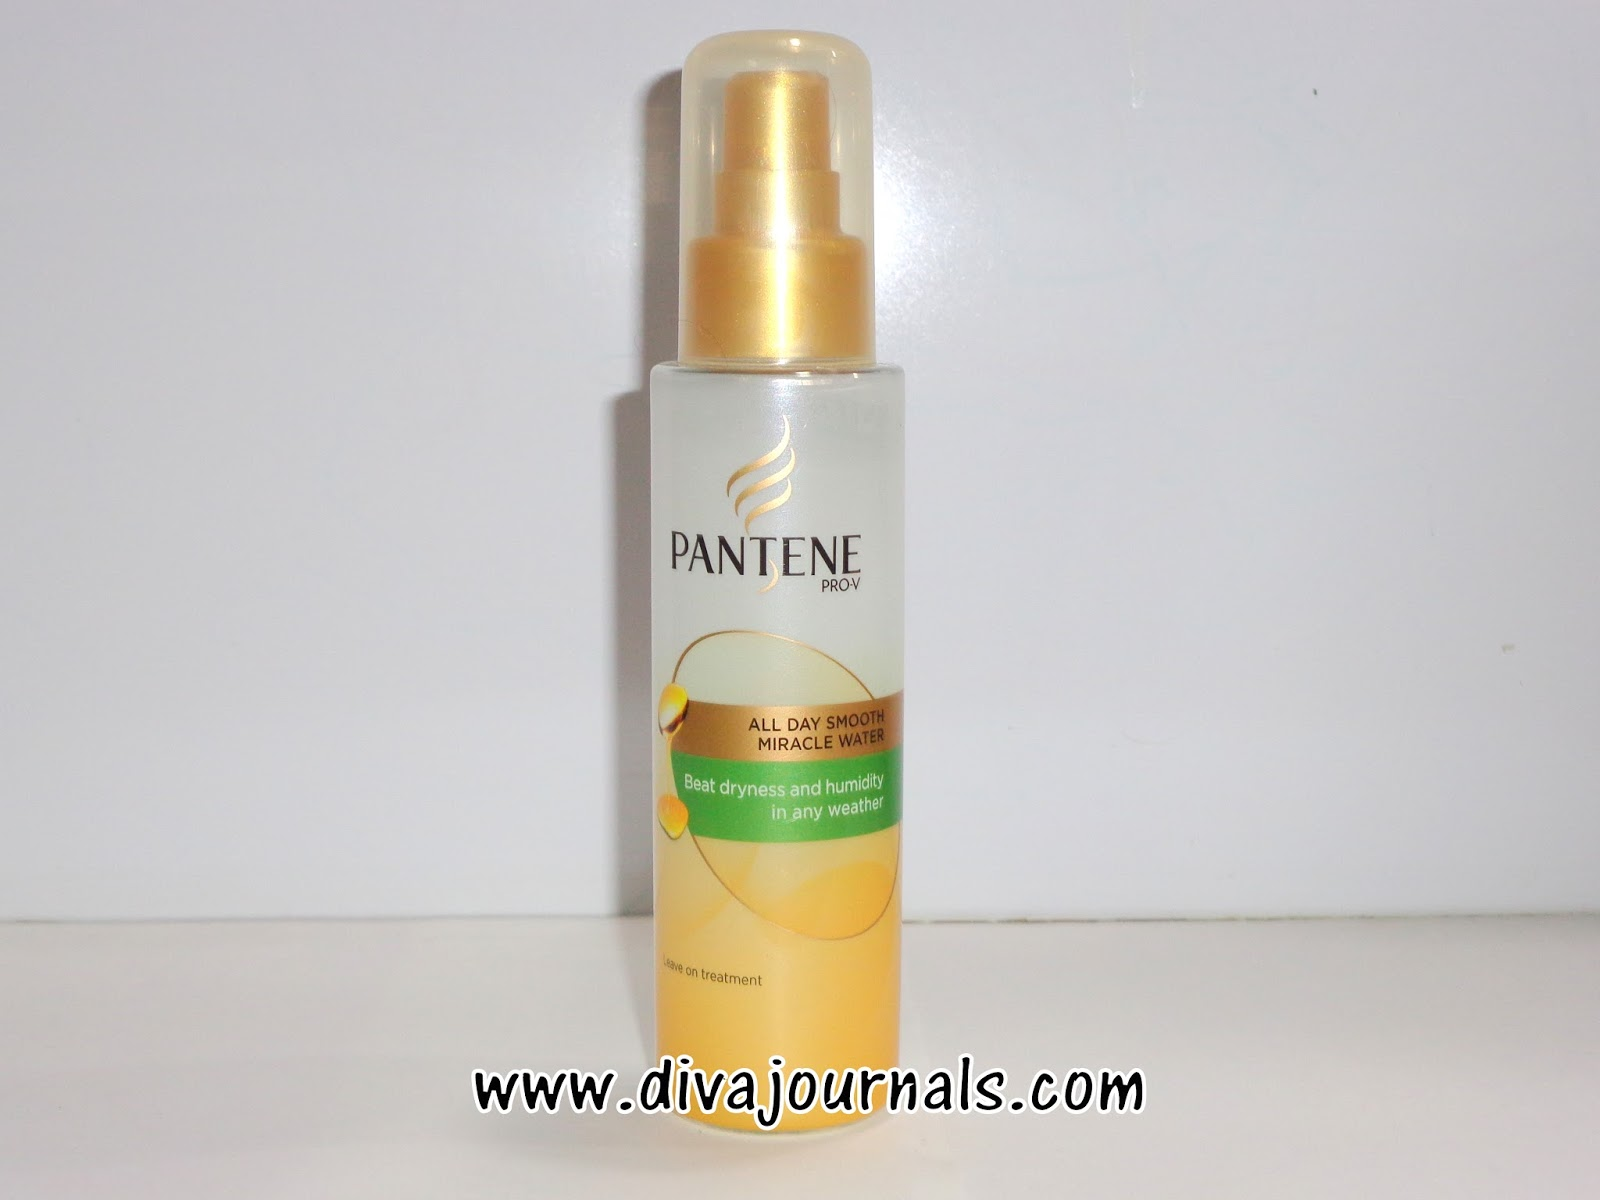 Pantene Pro-V All Day Smooth Miracle Water Review